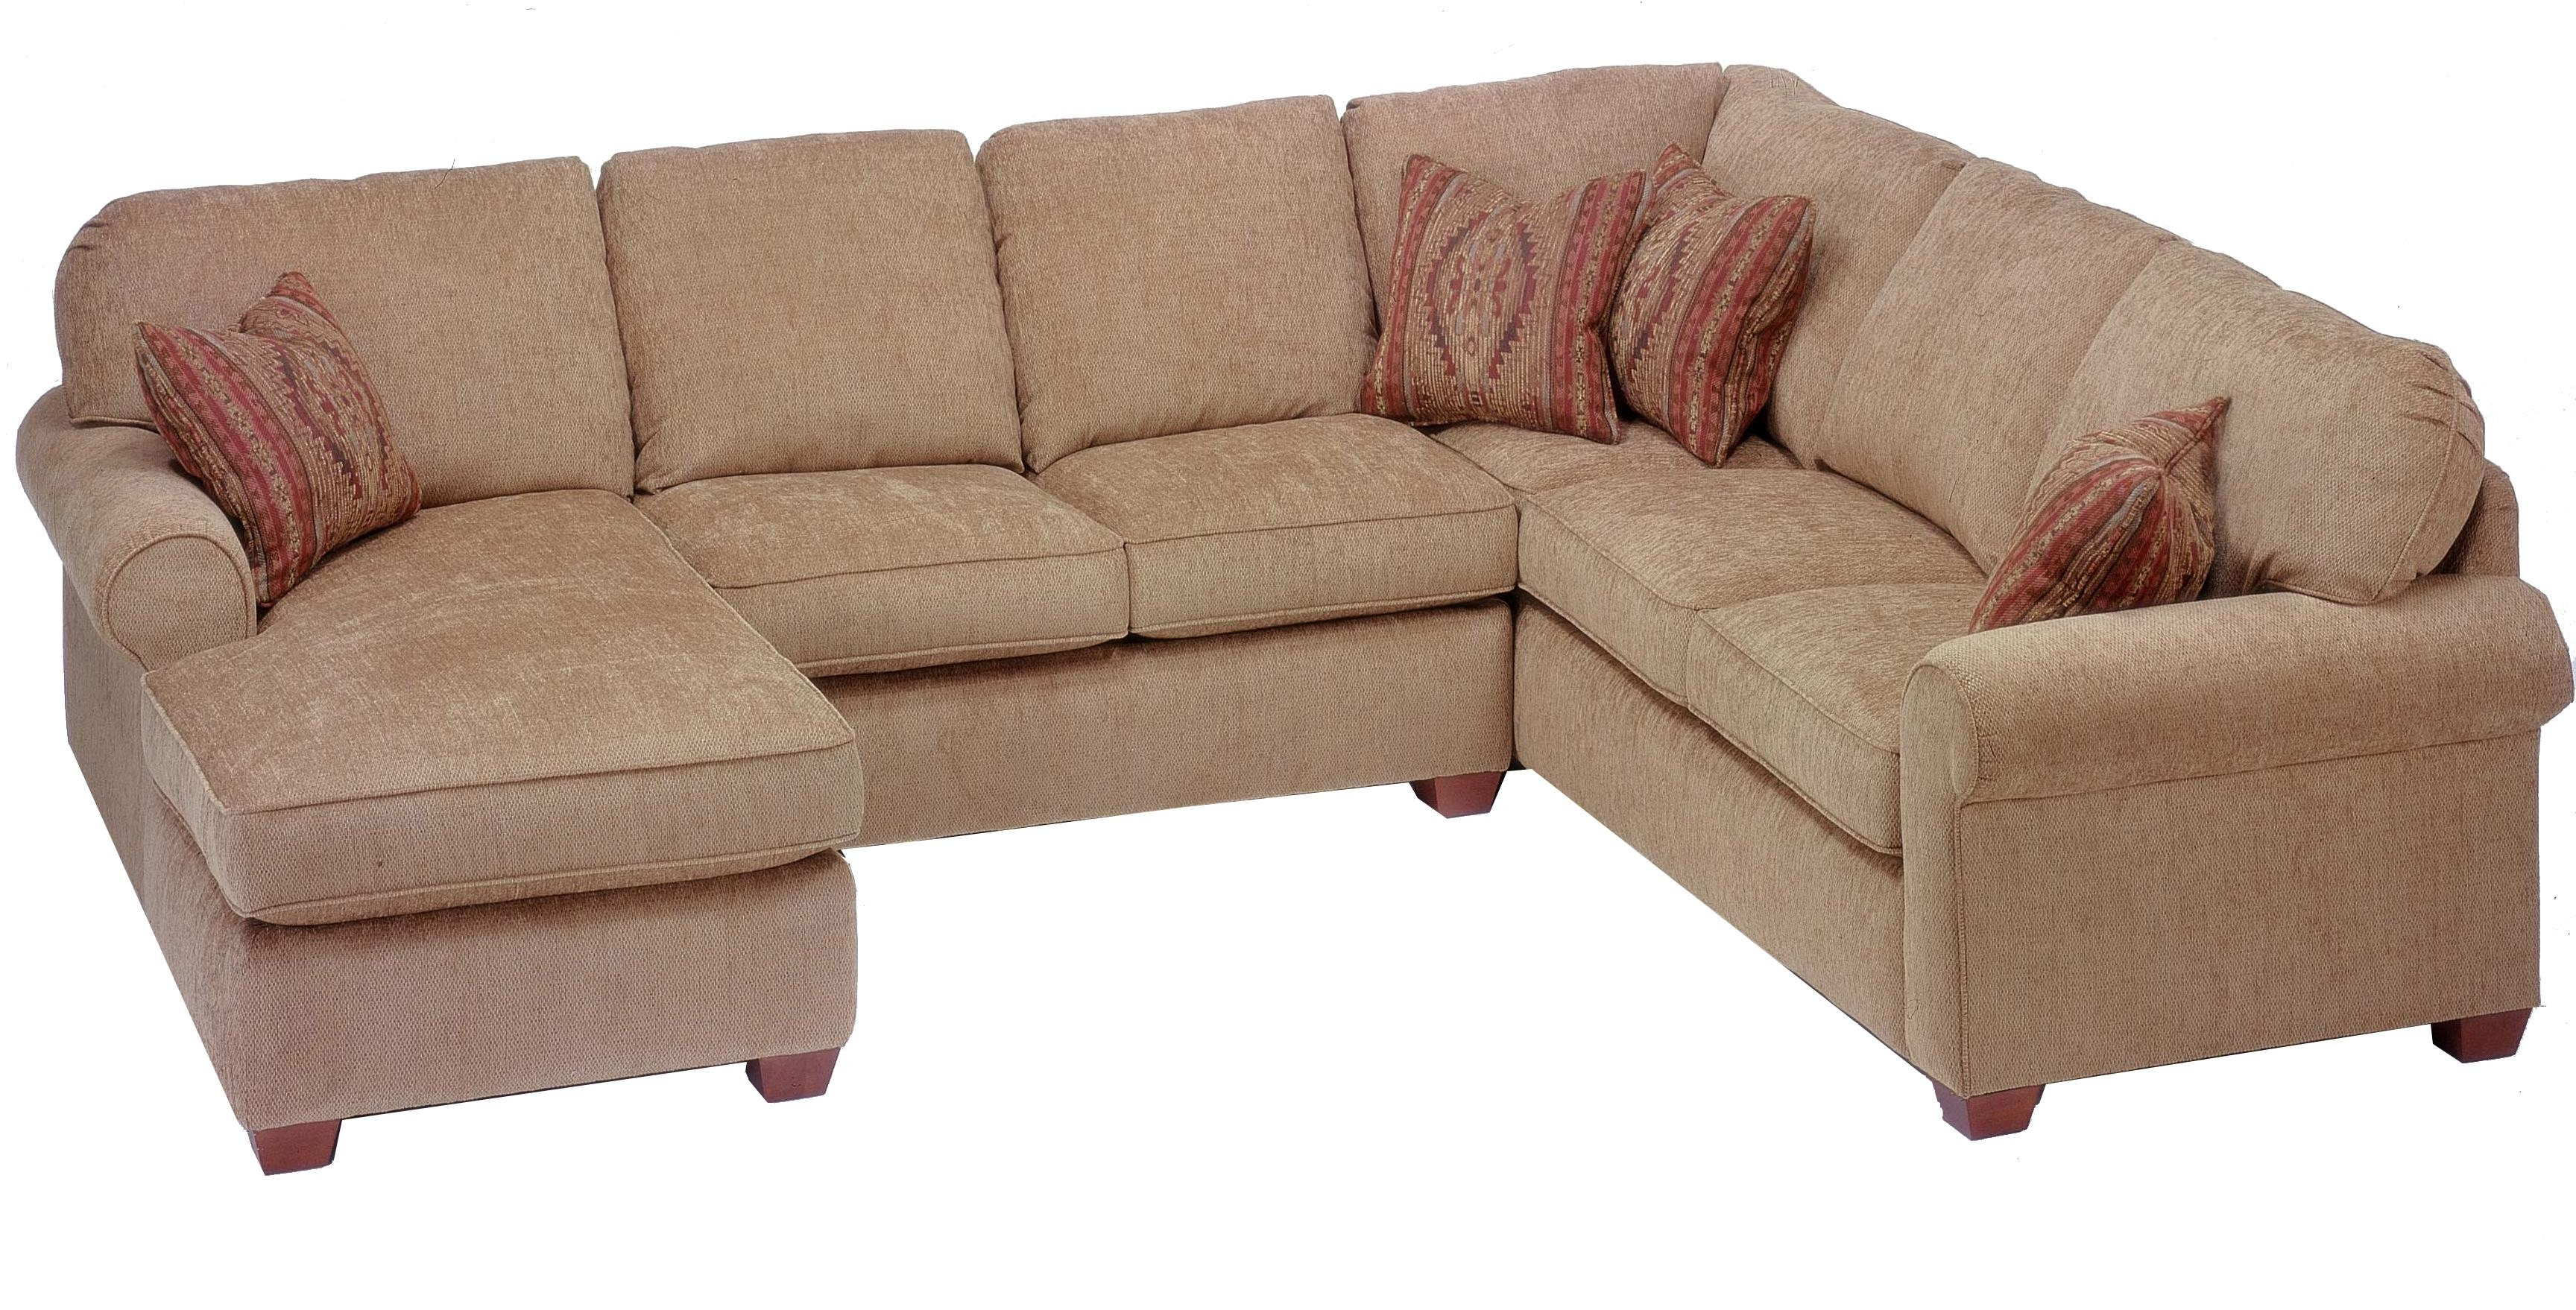 Flexsteel Thornton 3 Piece Sectional With Chaise – Ahfa – Sofa Pertaining To Norfolk Chocolate 3 Piece Sectionals With Raf Chaise (Image 16 of 33)